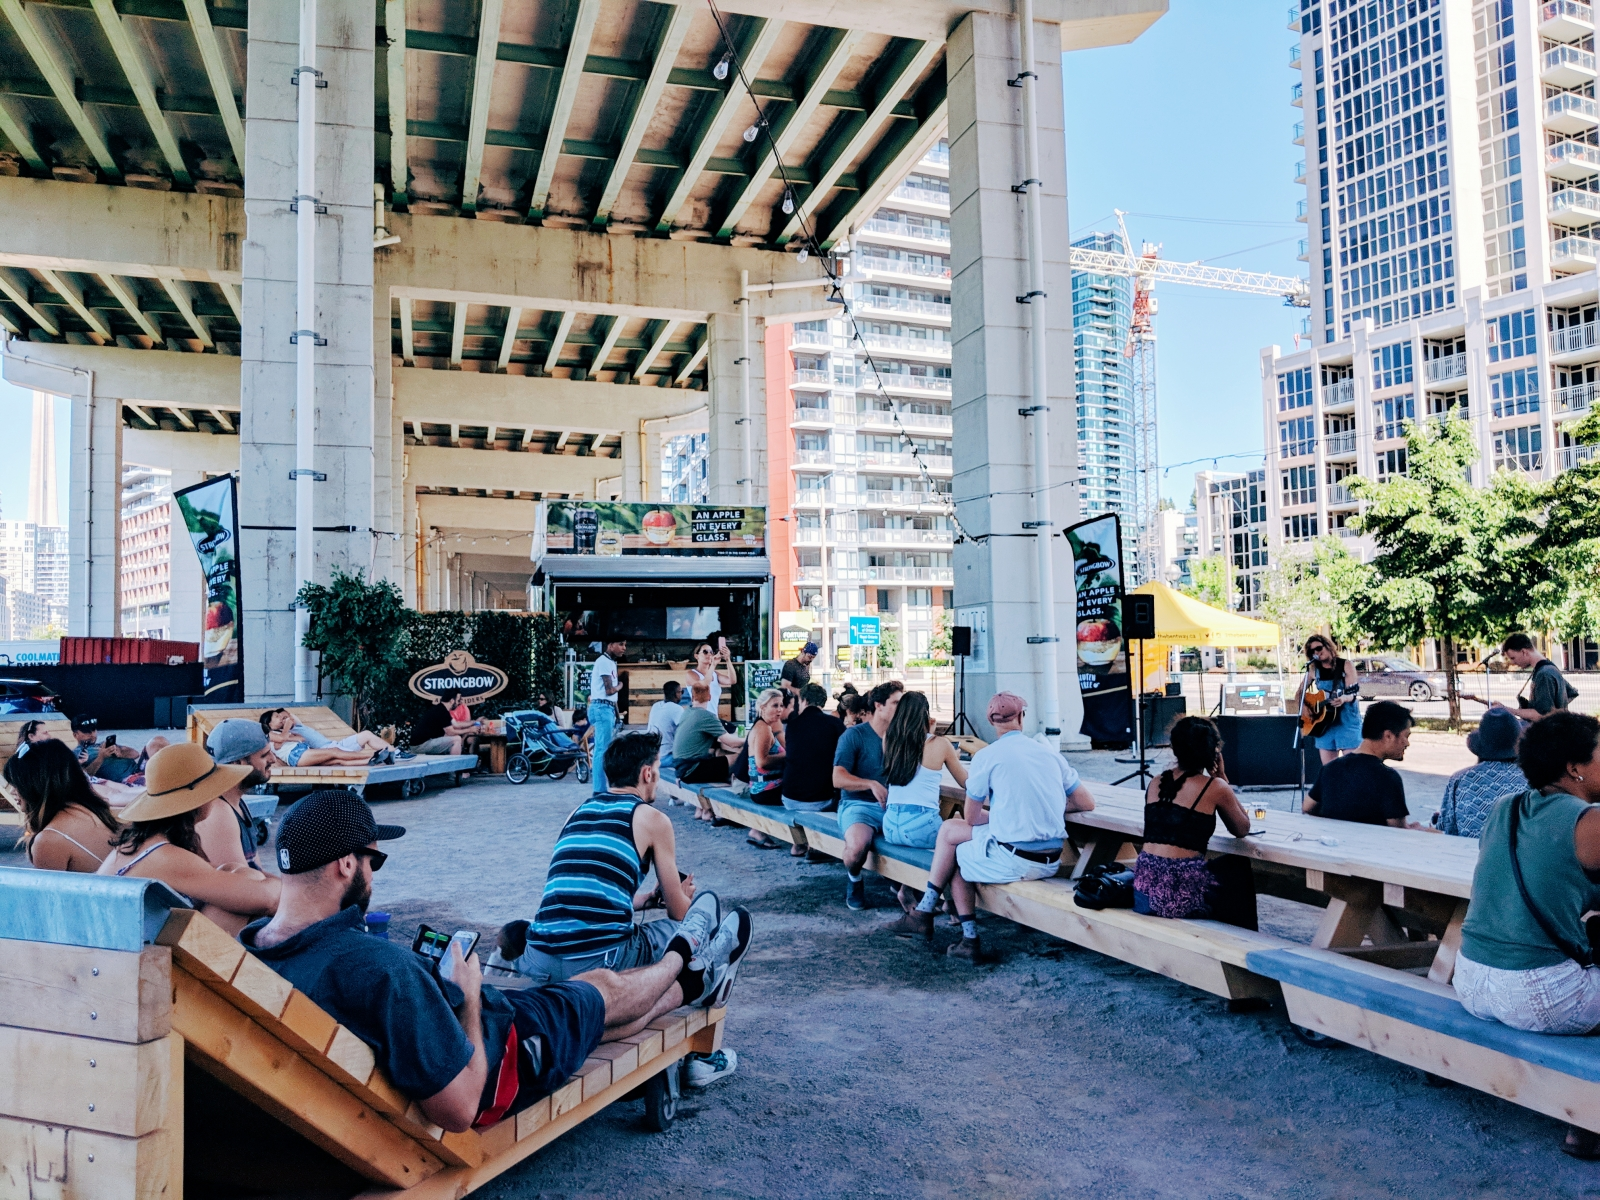 During the summer, The Bentway in Toronto hosts a beer garden, live music, a skatepark, yoga classes and more. (Photo courtesy of Nicole Pacampara)